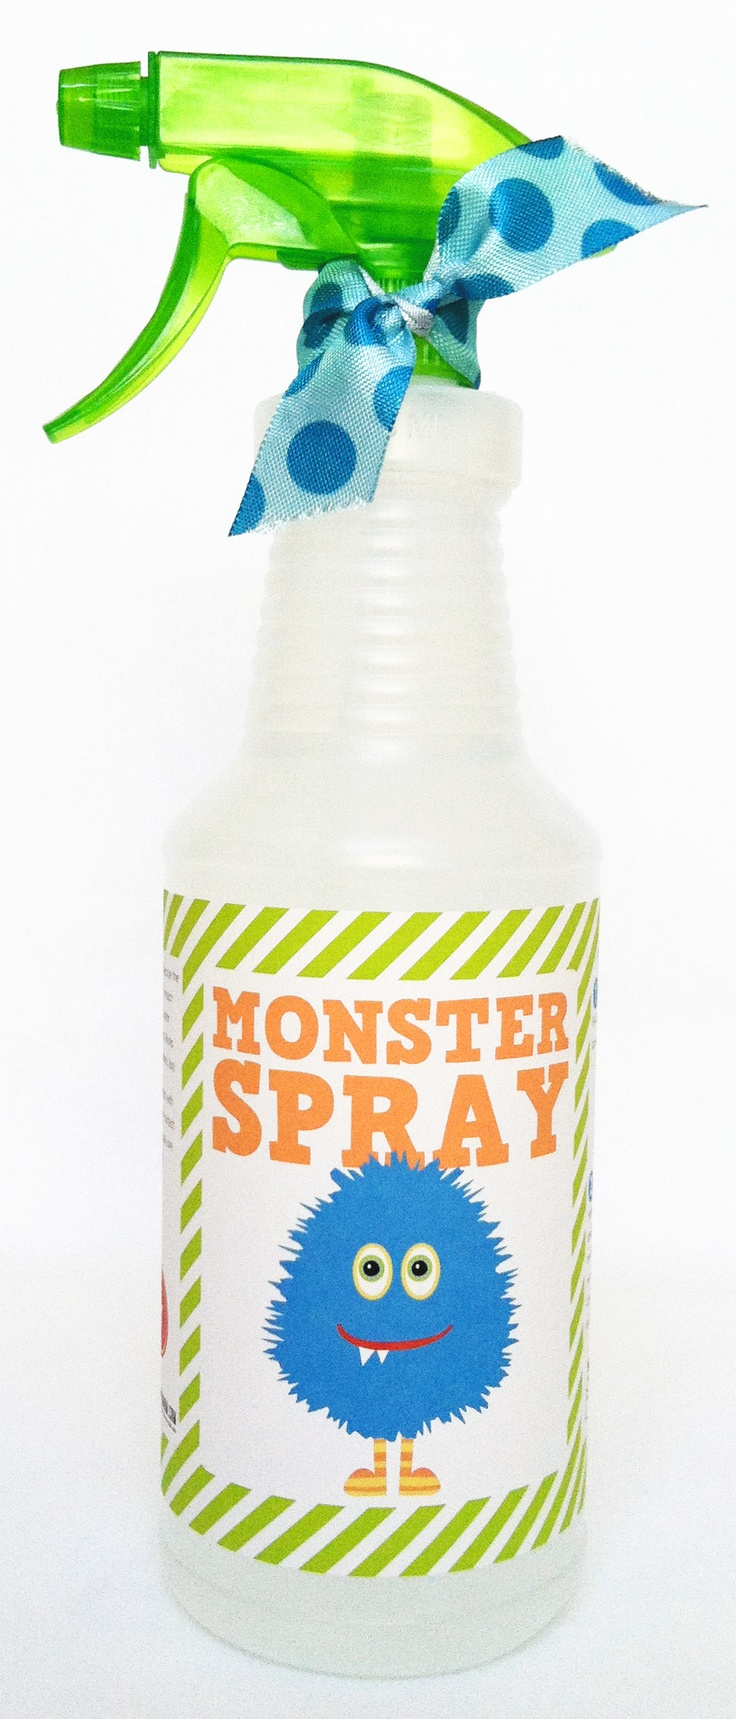 Monster Spray - If kids are scared of monsters when it's time for bed, make Monster Spray. Just spray it in all the places monsters might hide (in the closet, under the bed, etc.) to make it safe.